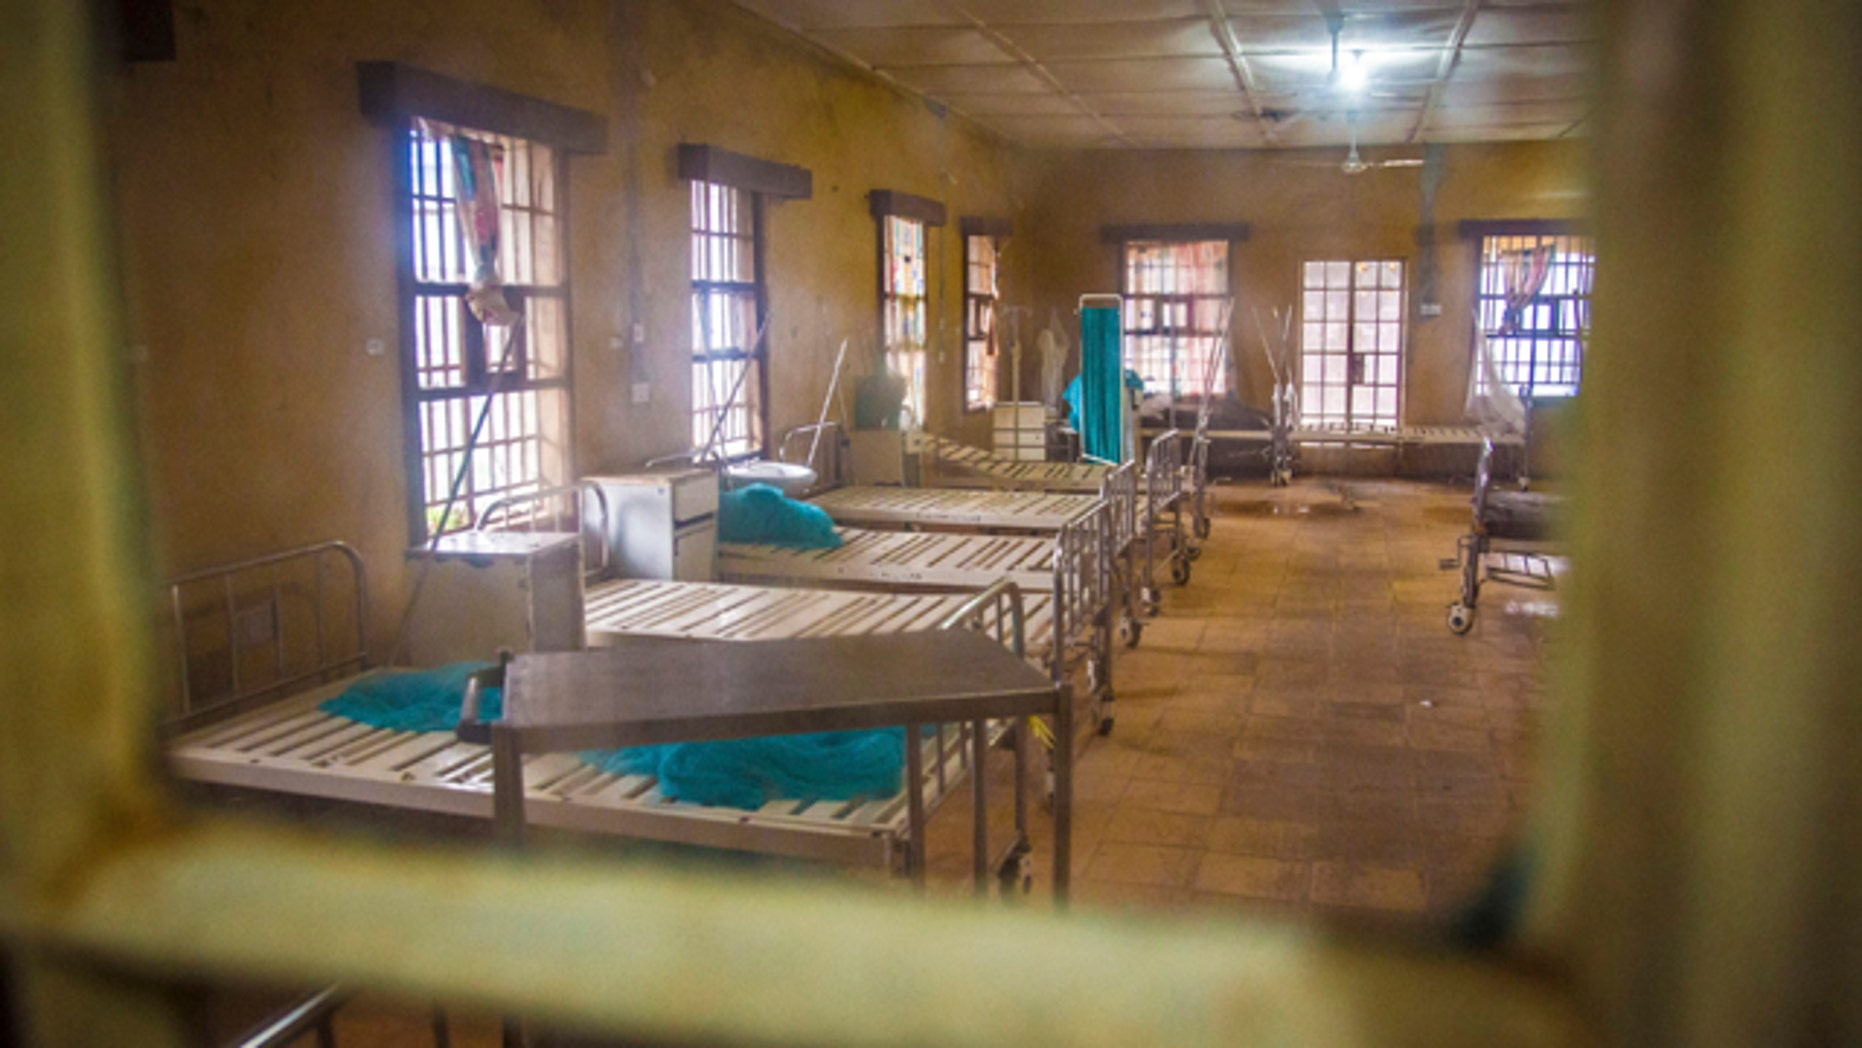 FILE - In this Sunday, Aug. 10, 2014 file photo, a ward at the government hospital in Kenema, eastern Sierra Leone lies empty after patients left and others were scared to be admitted, fearing they would contract the Ebola virus. (AP Photo/Michael Duff, File)